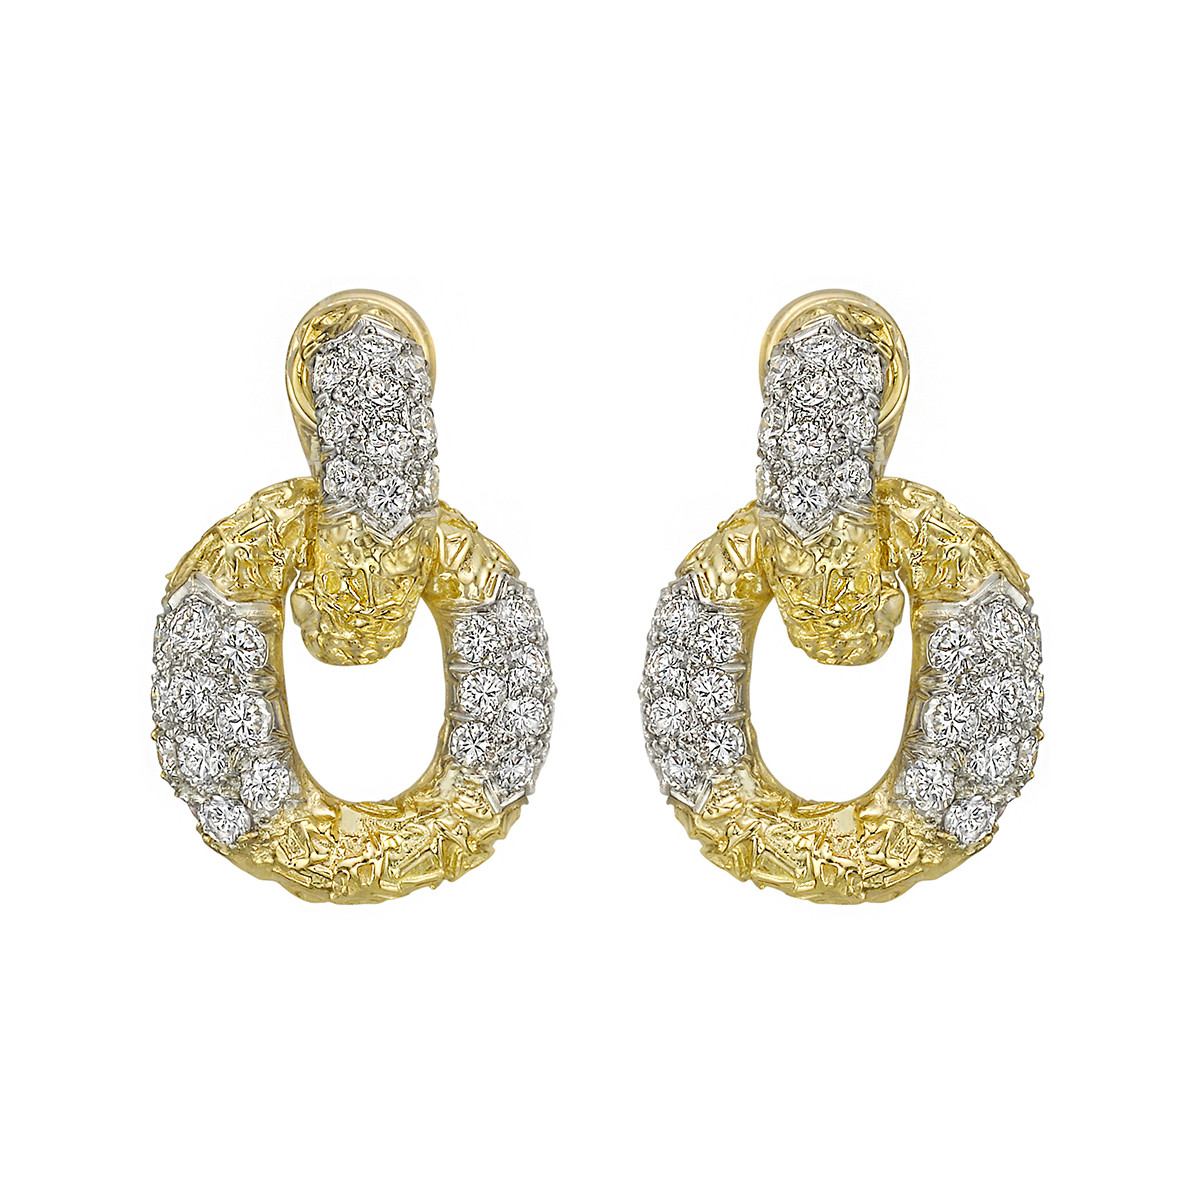 18k Yellow Gold & Diamond Oval Link Drop Earrings